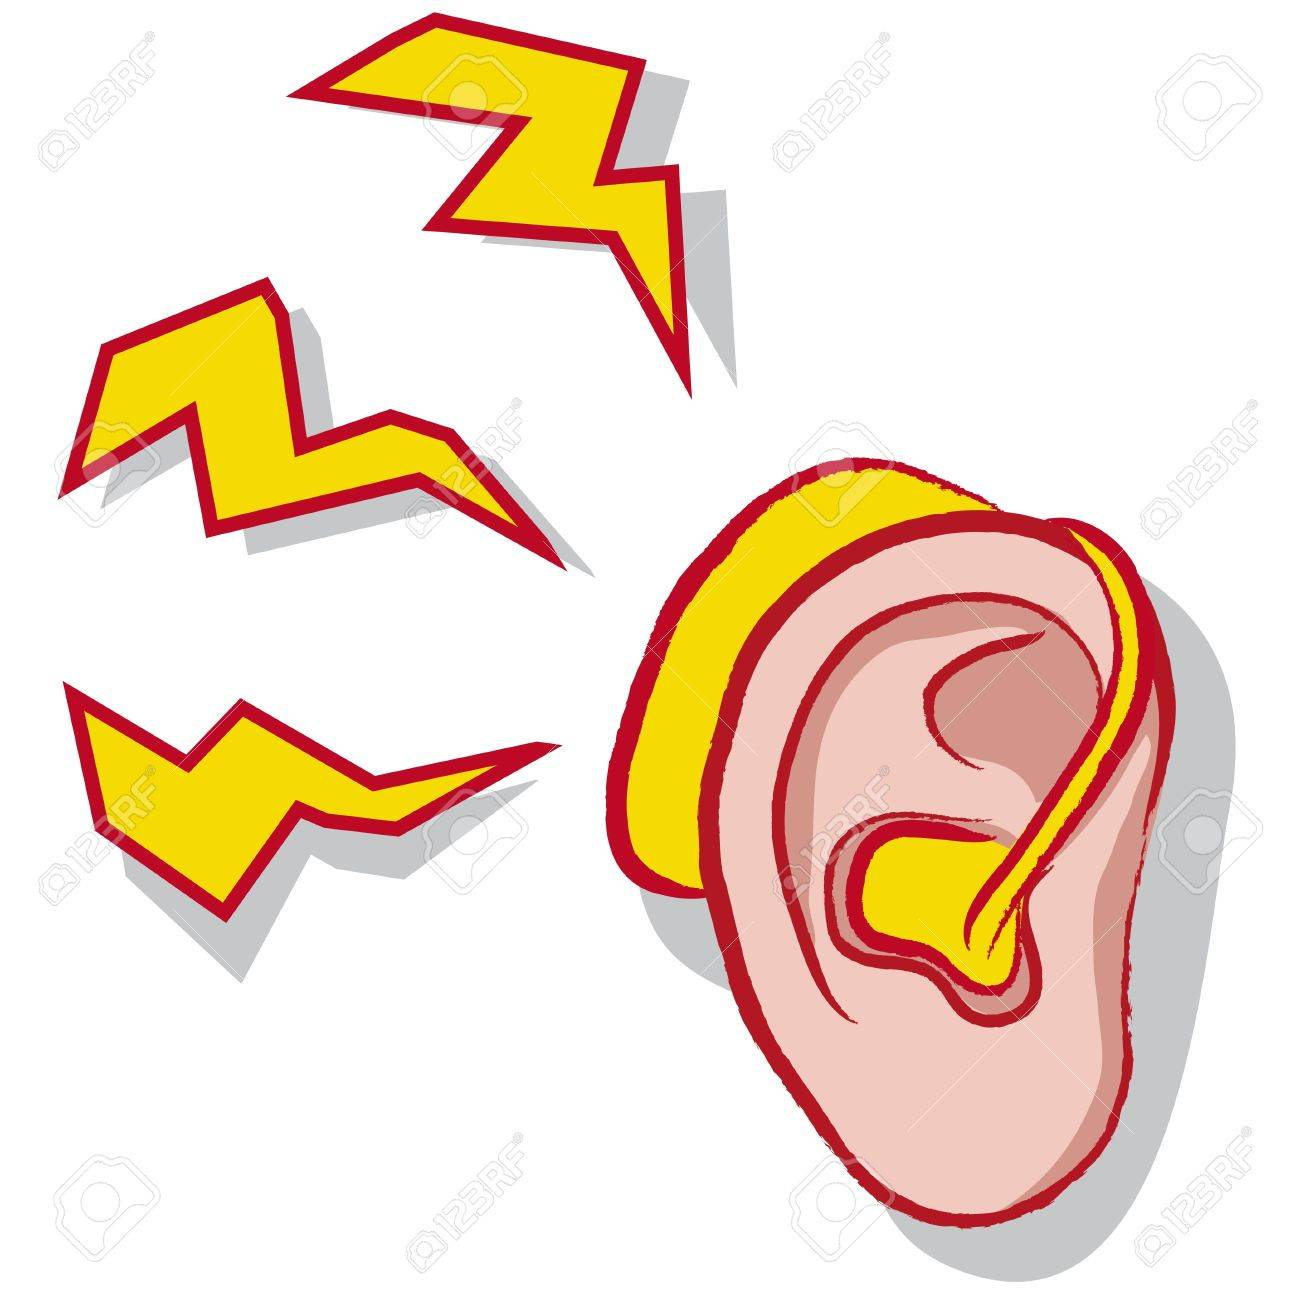 Hearing aid clipart 1 » Clipart Station.